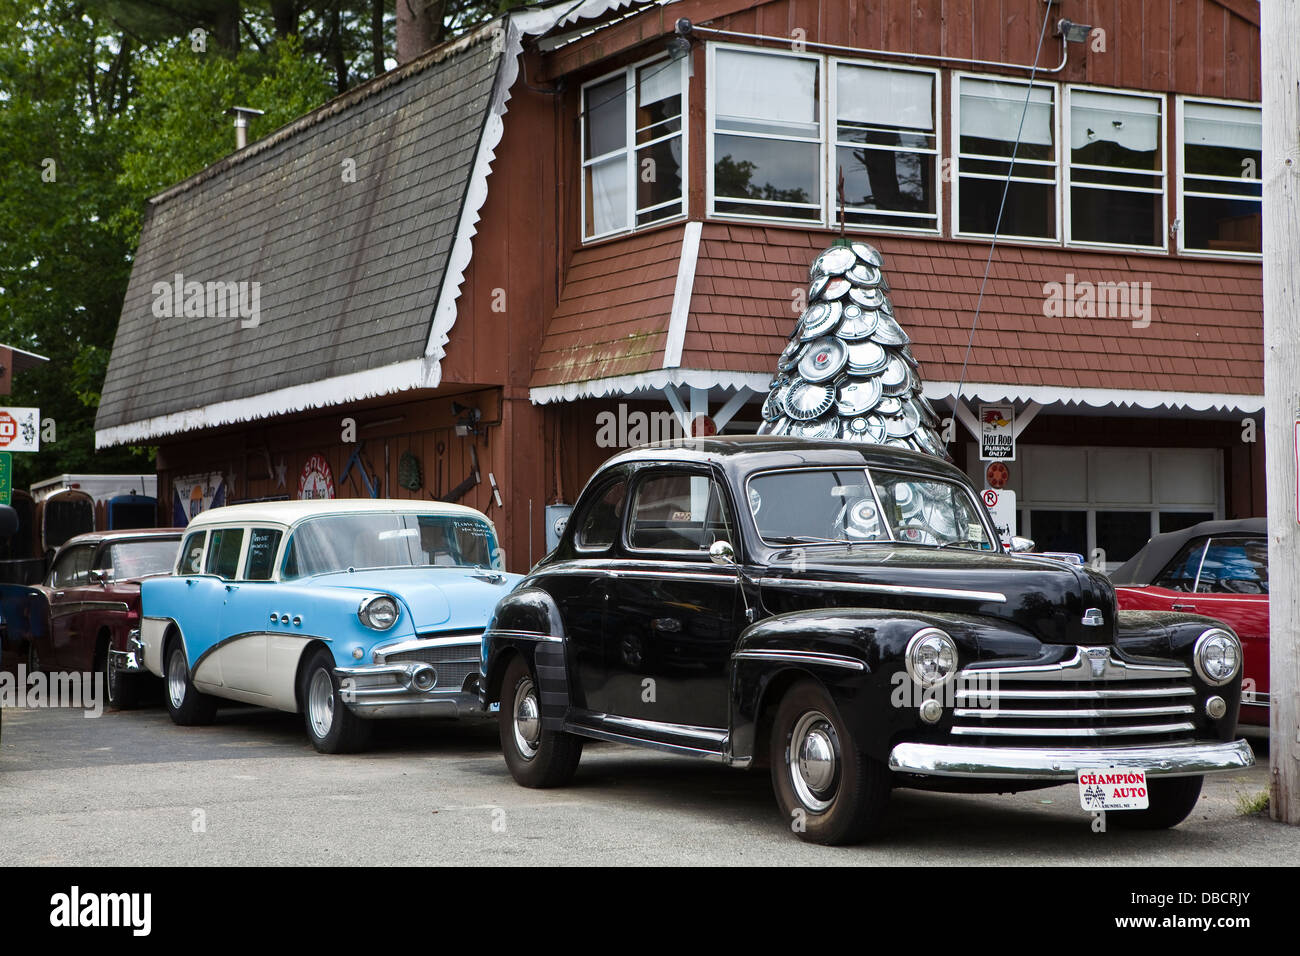 A Used Car Dealer Stock Photos & A Used Car Dealer Stock Images - Alamy